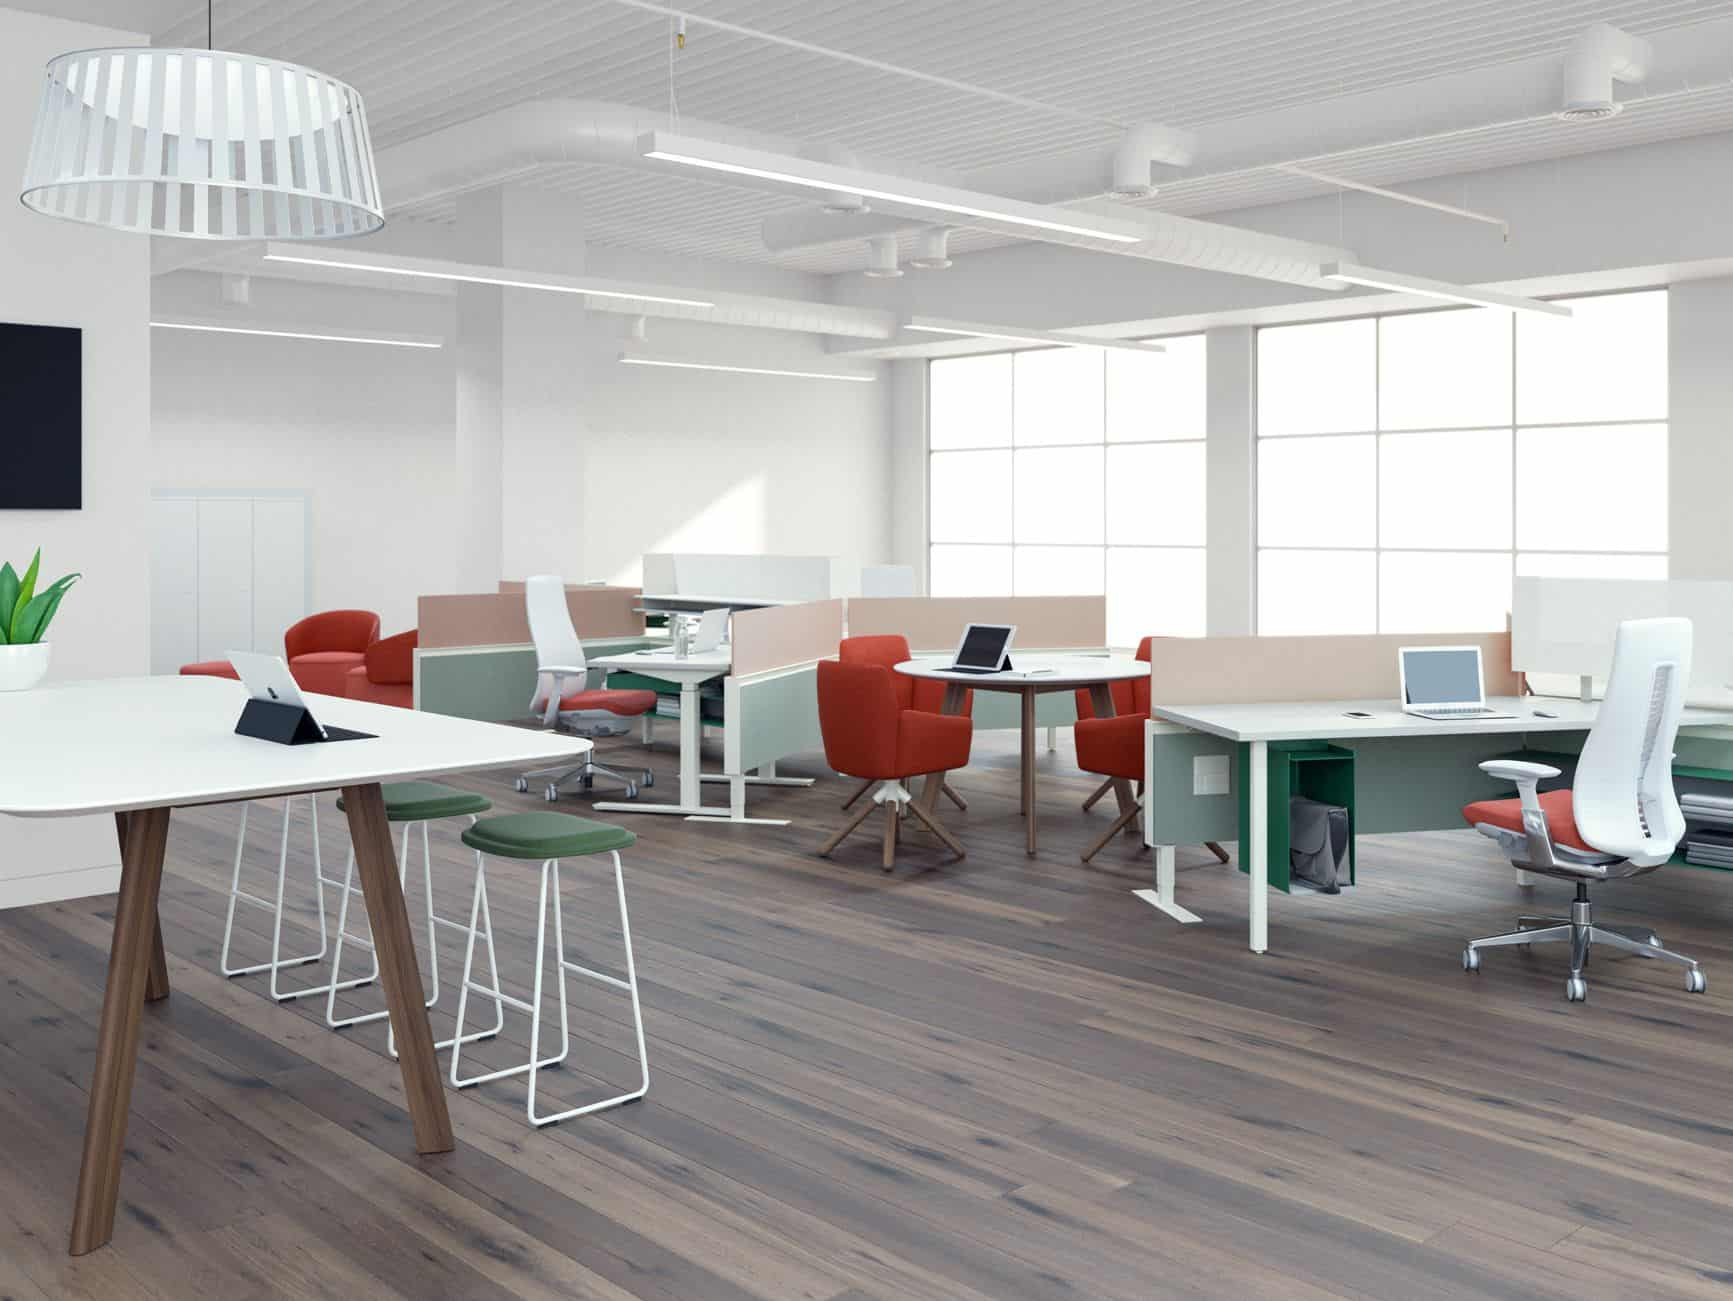 compose-connections-haworth- workspace- partition system 6